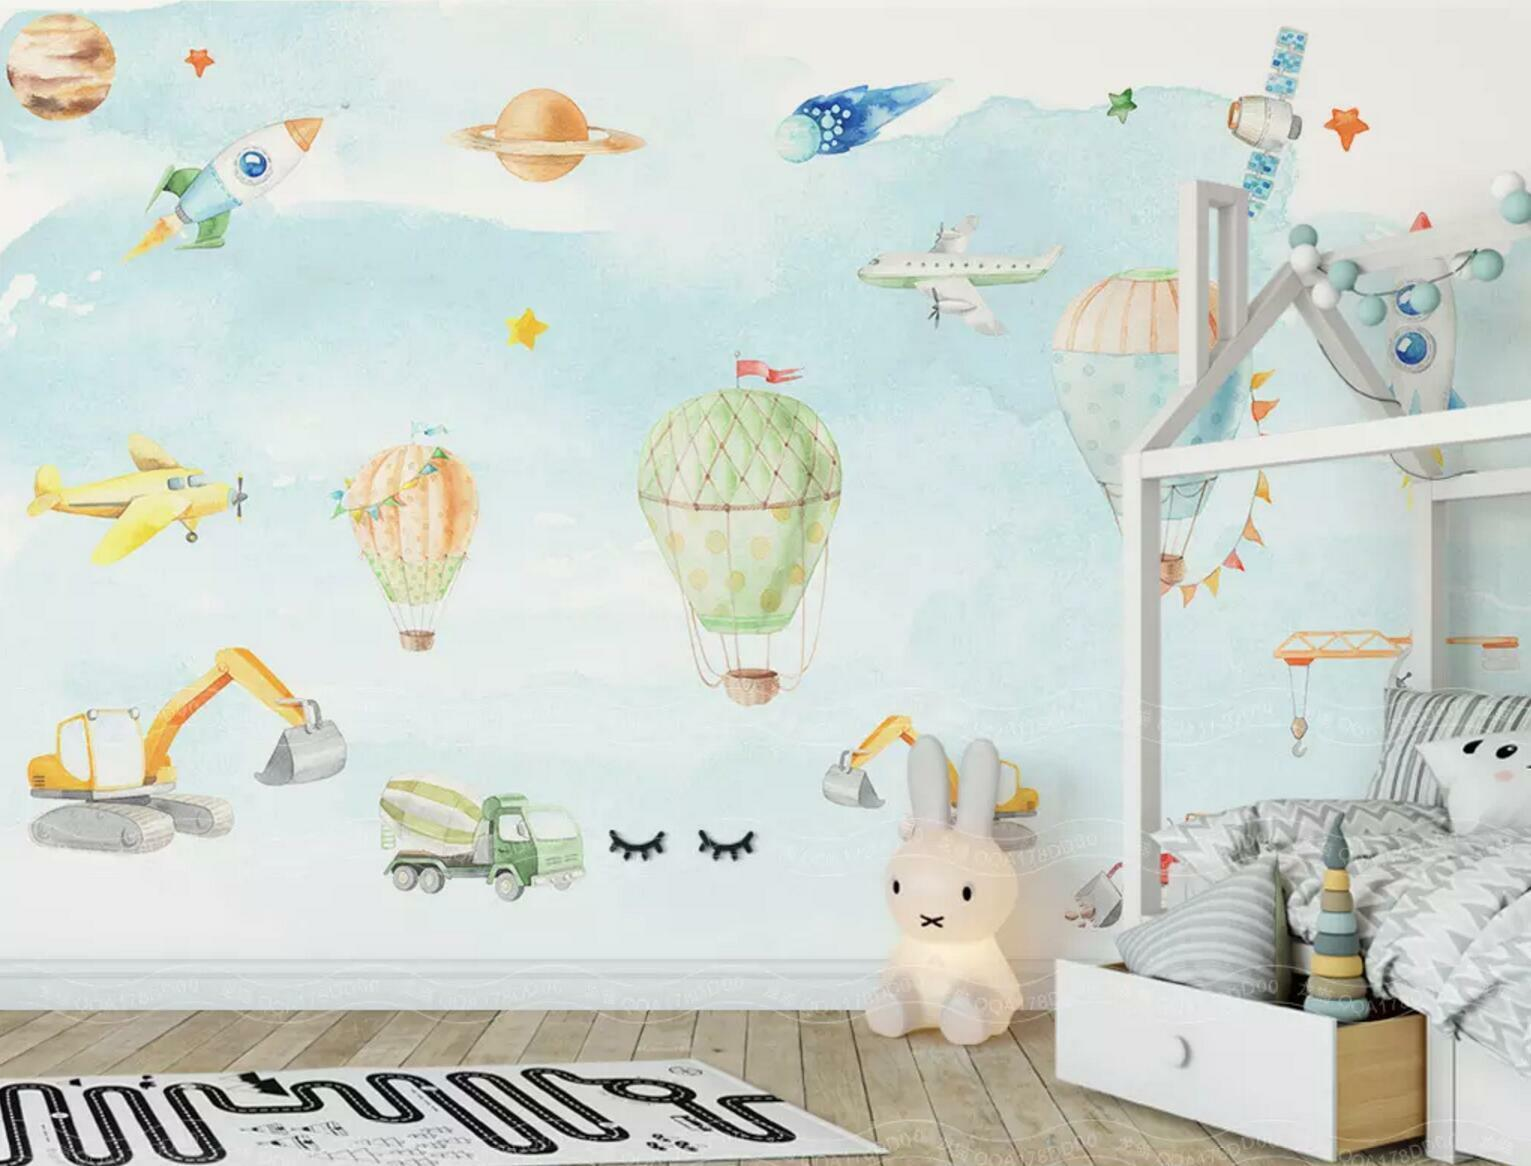 3D Hot Air Balloon 83 Wall Paper Exclusive MXY Wallpaper Mural Decal Indoor Wall